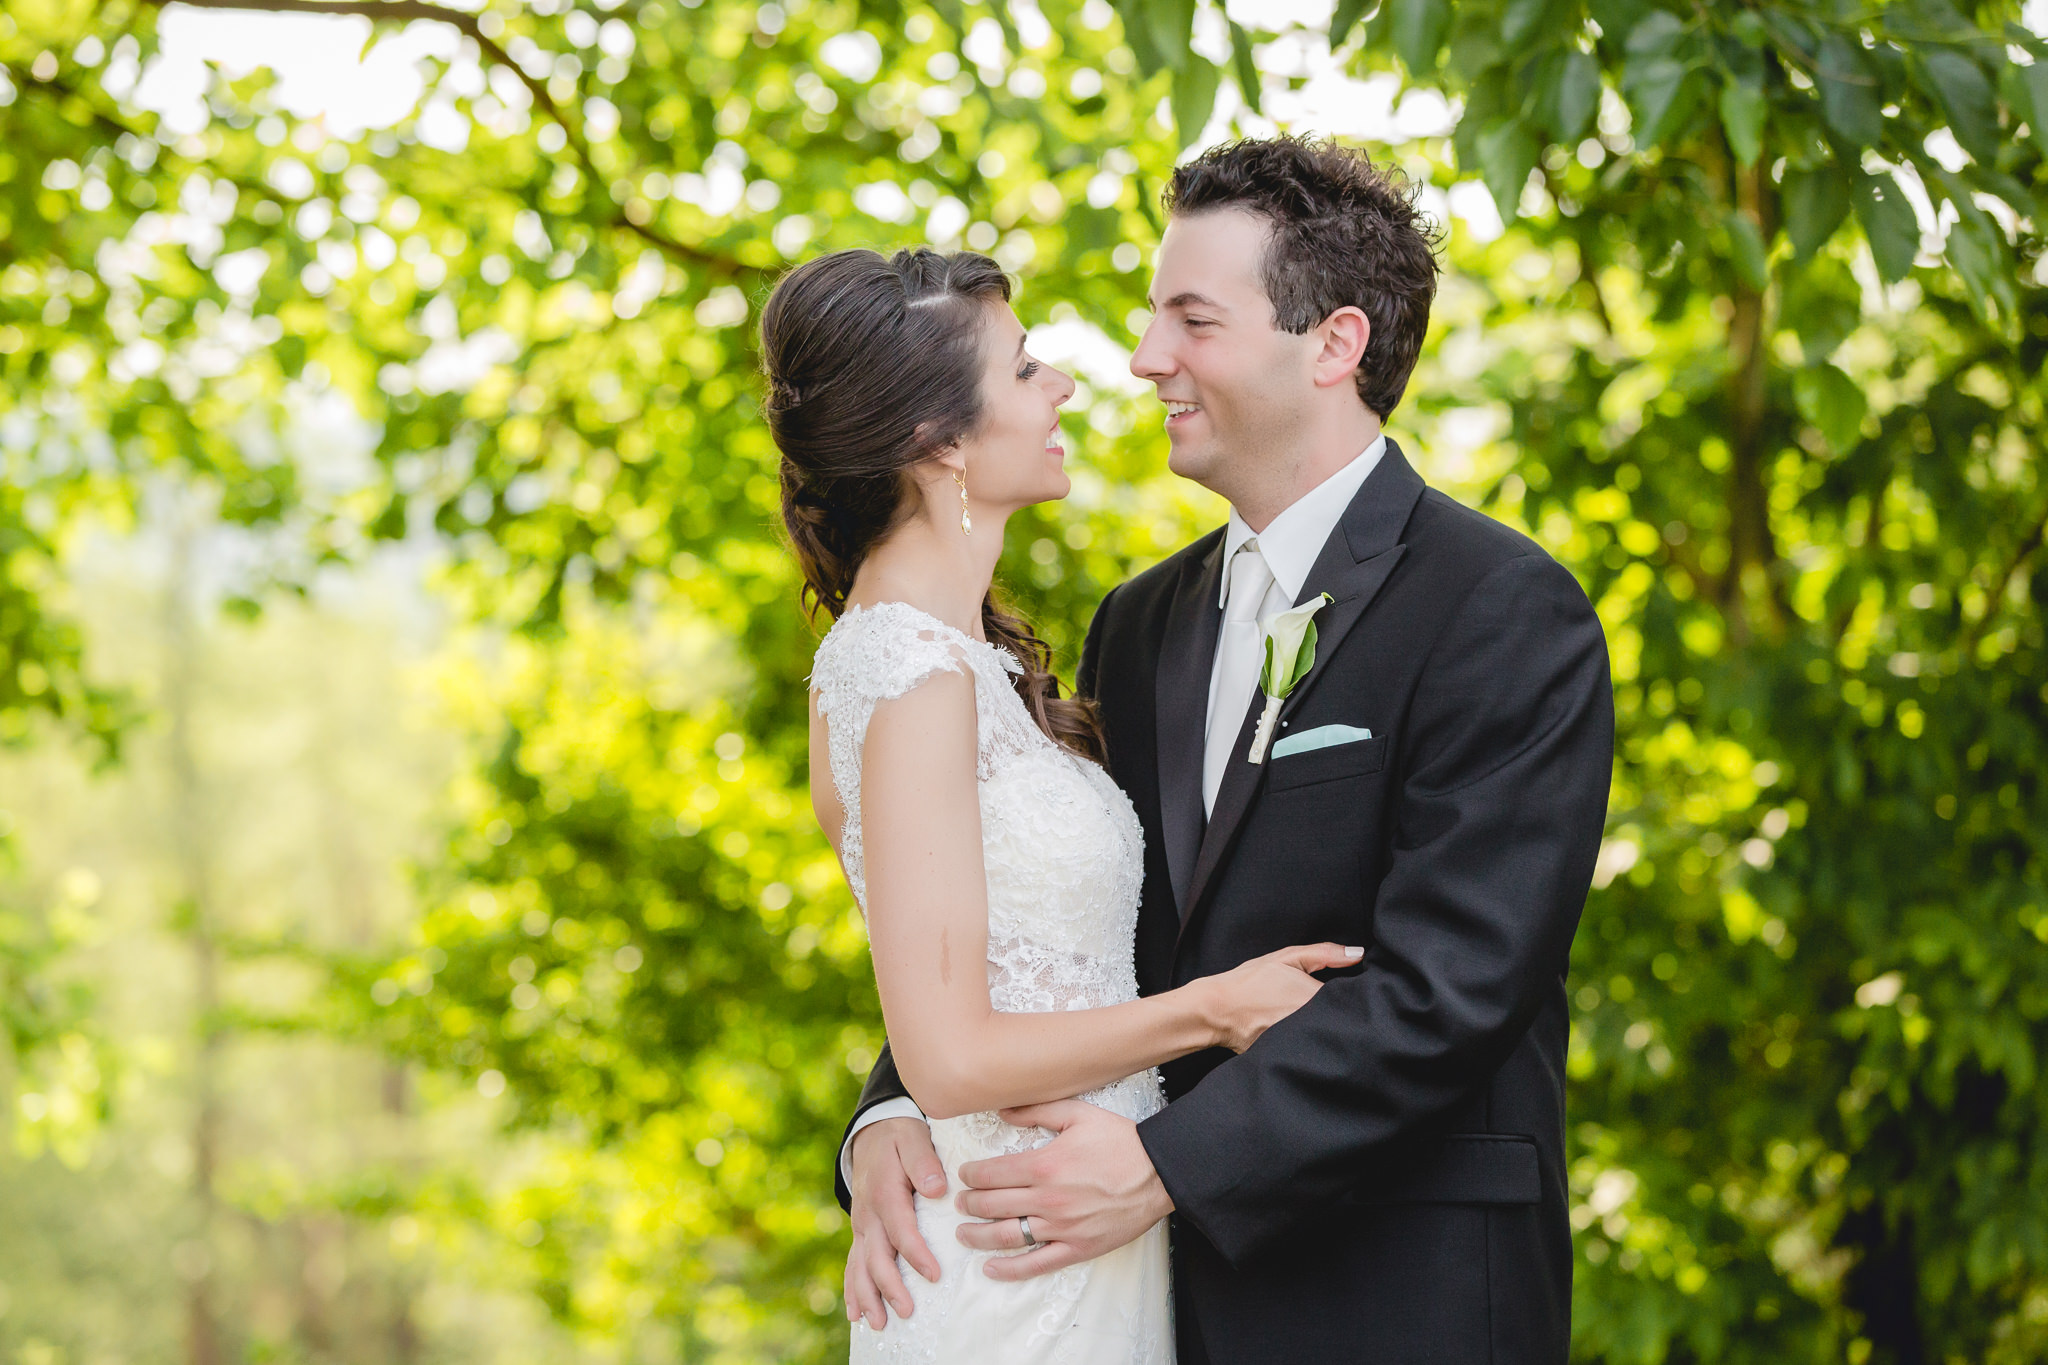 Bride & groom photo session at Greystone Fields